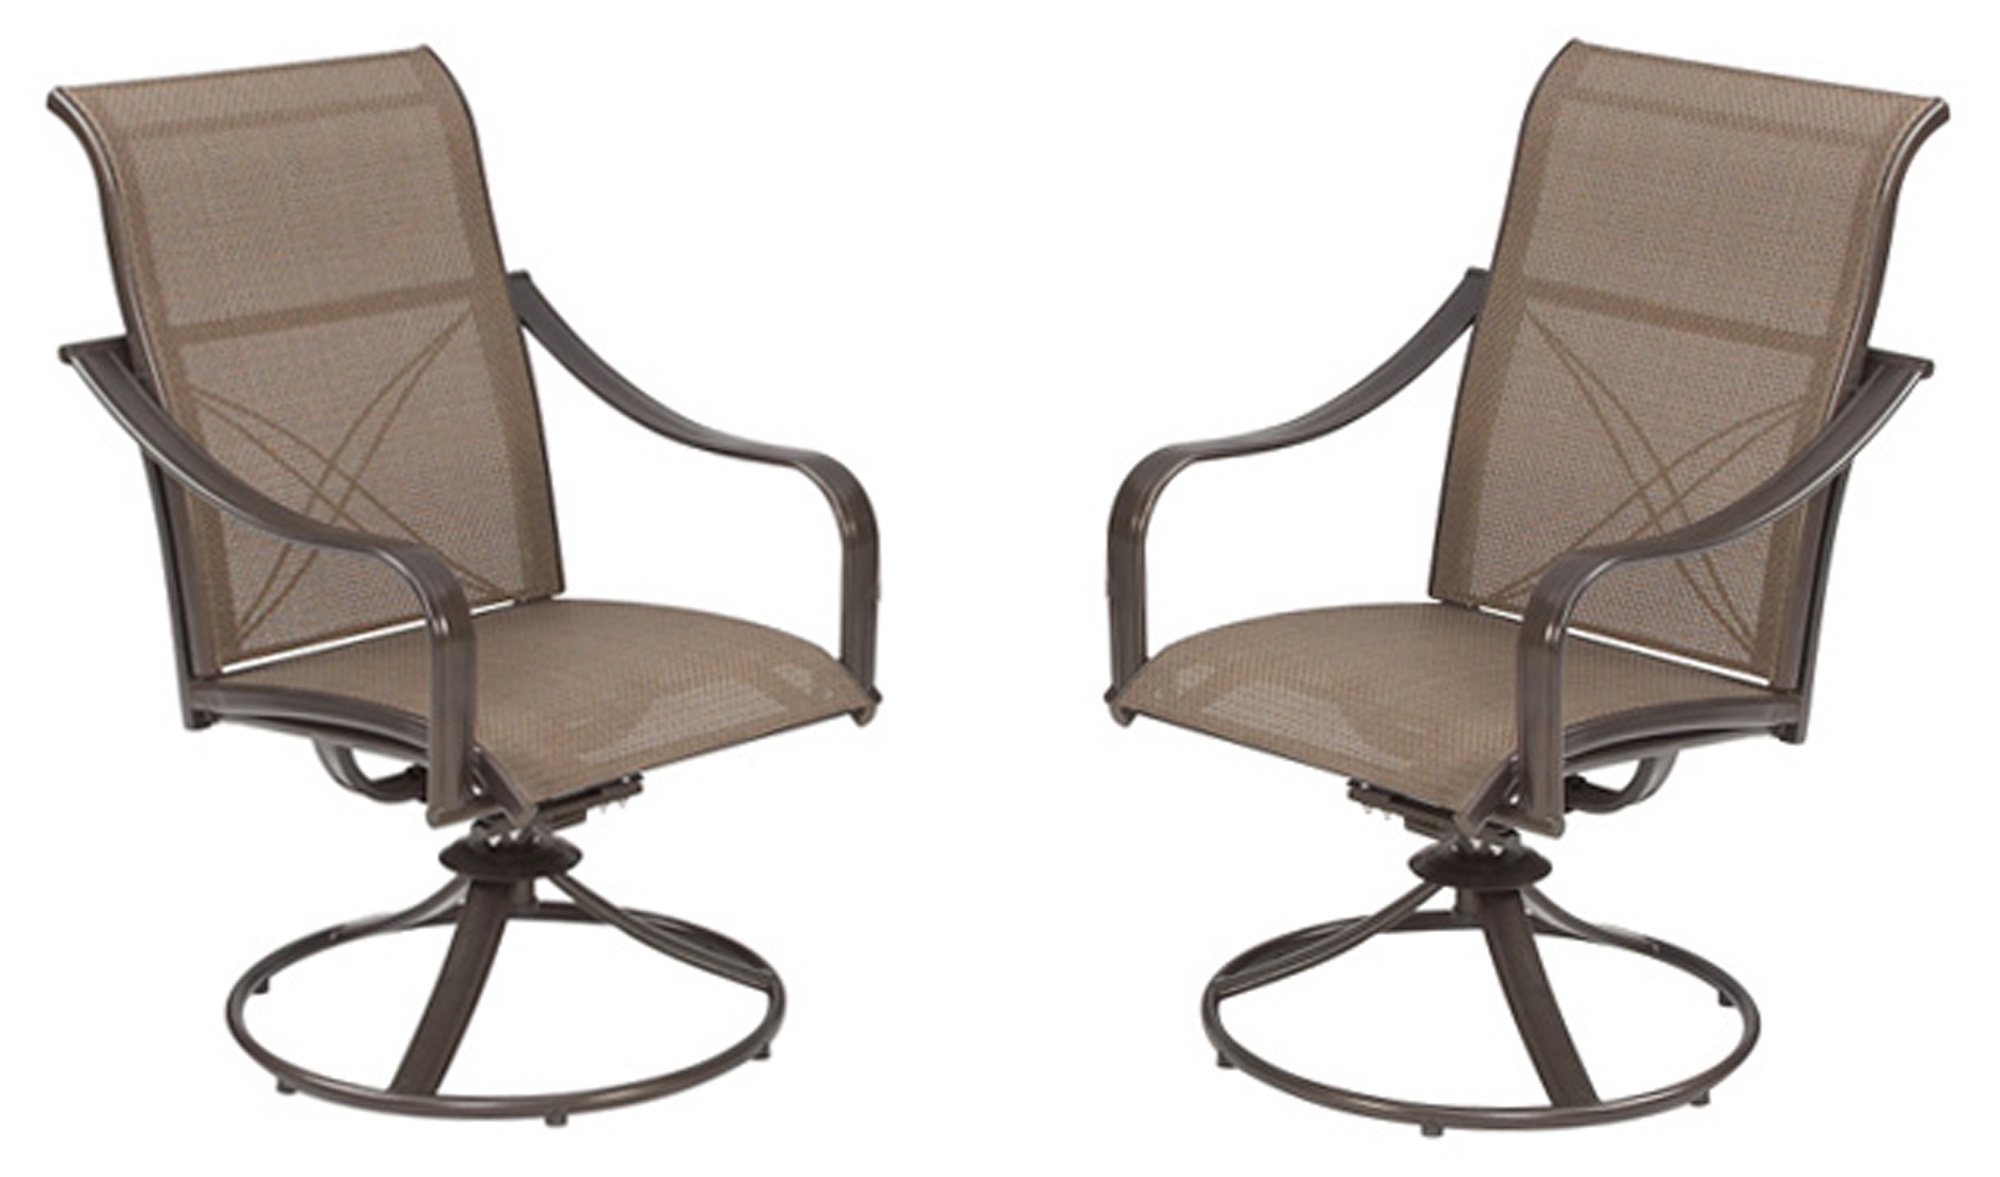 casual living worldwide recalls swivel patio chairs due to fall rh cpsc gov wellington outdoor furniture at meijer outdoor furniture wellington new zealand